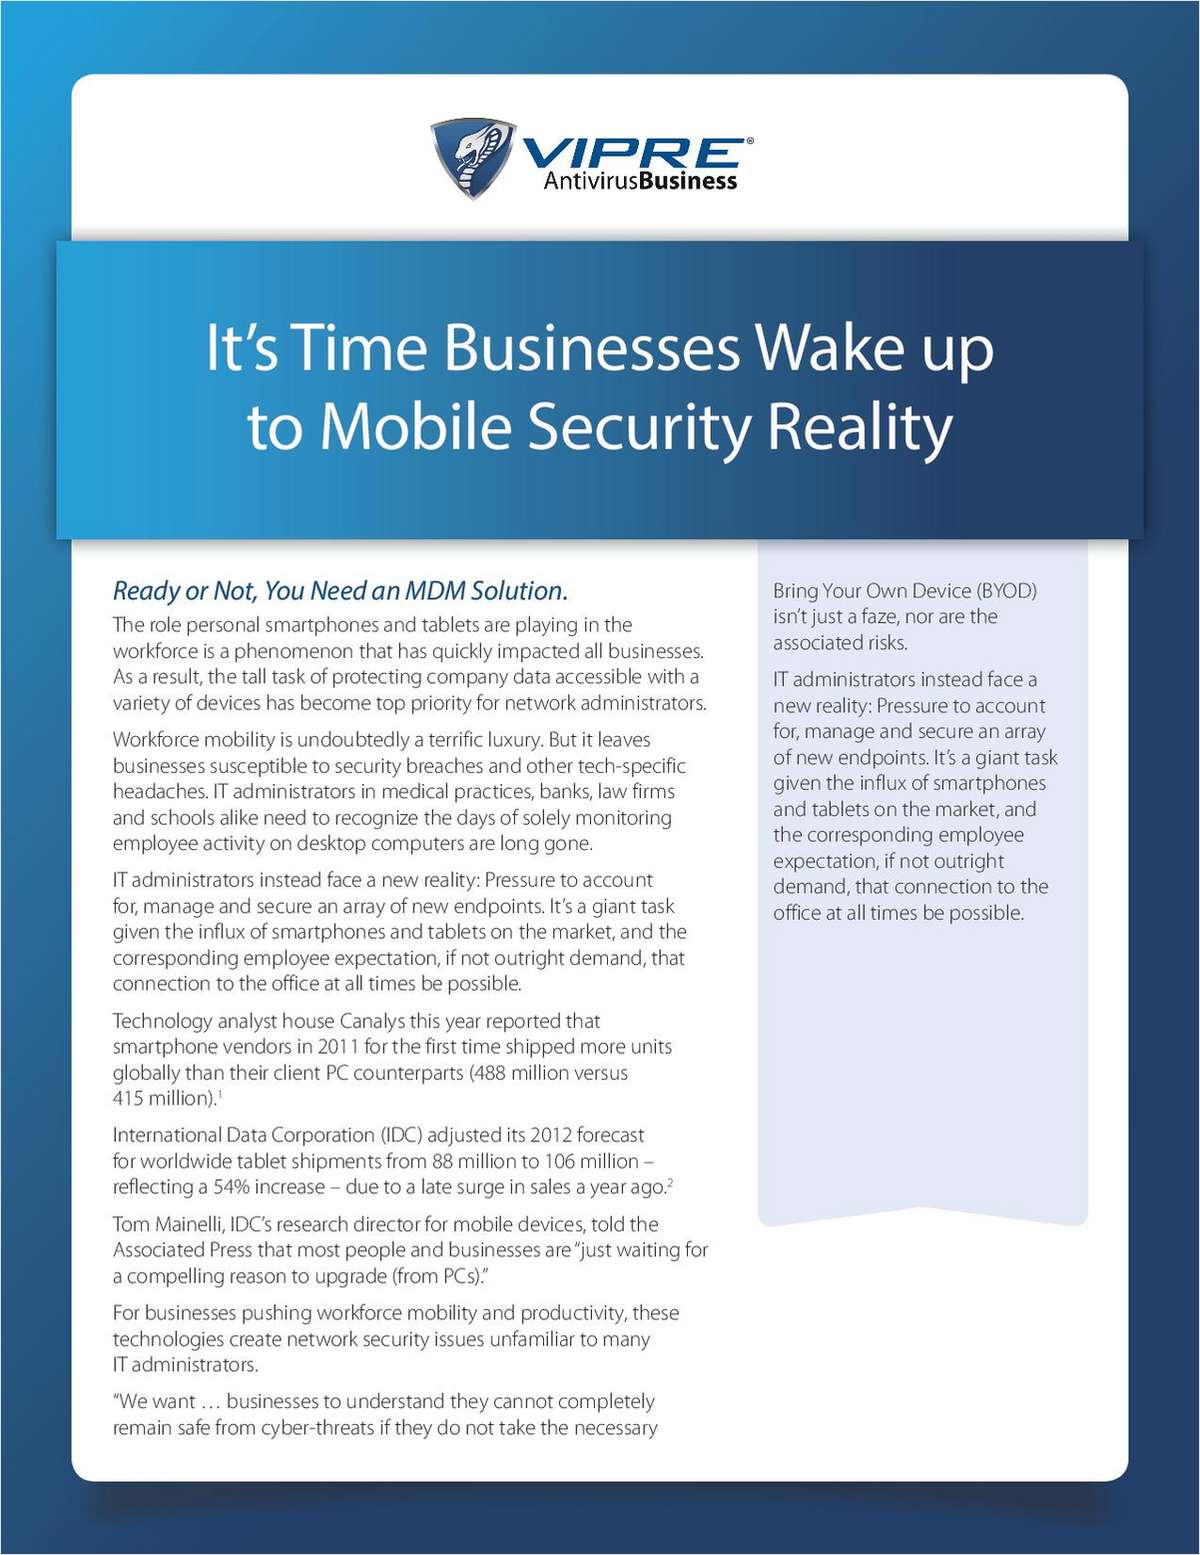 It's Time Businesses Wake Up to Mobile Security Reality